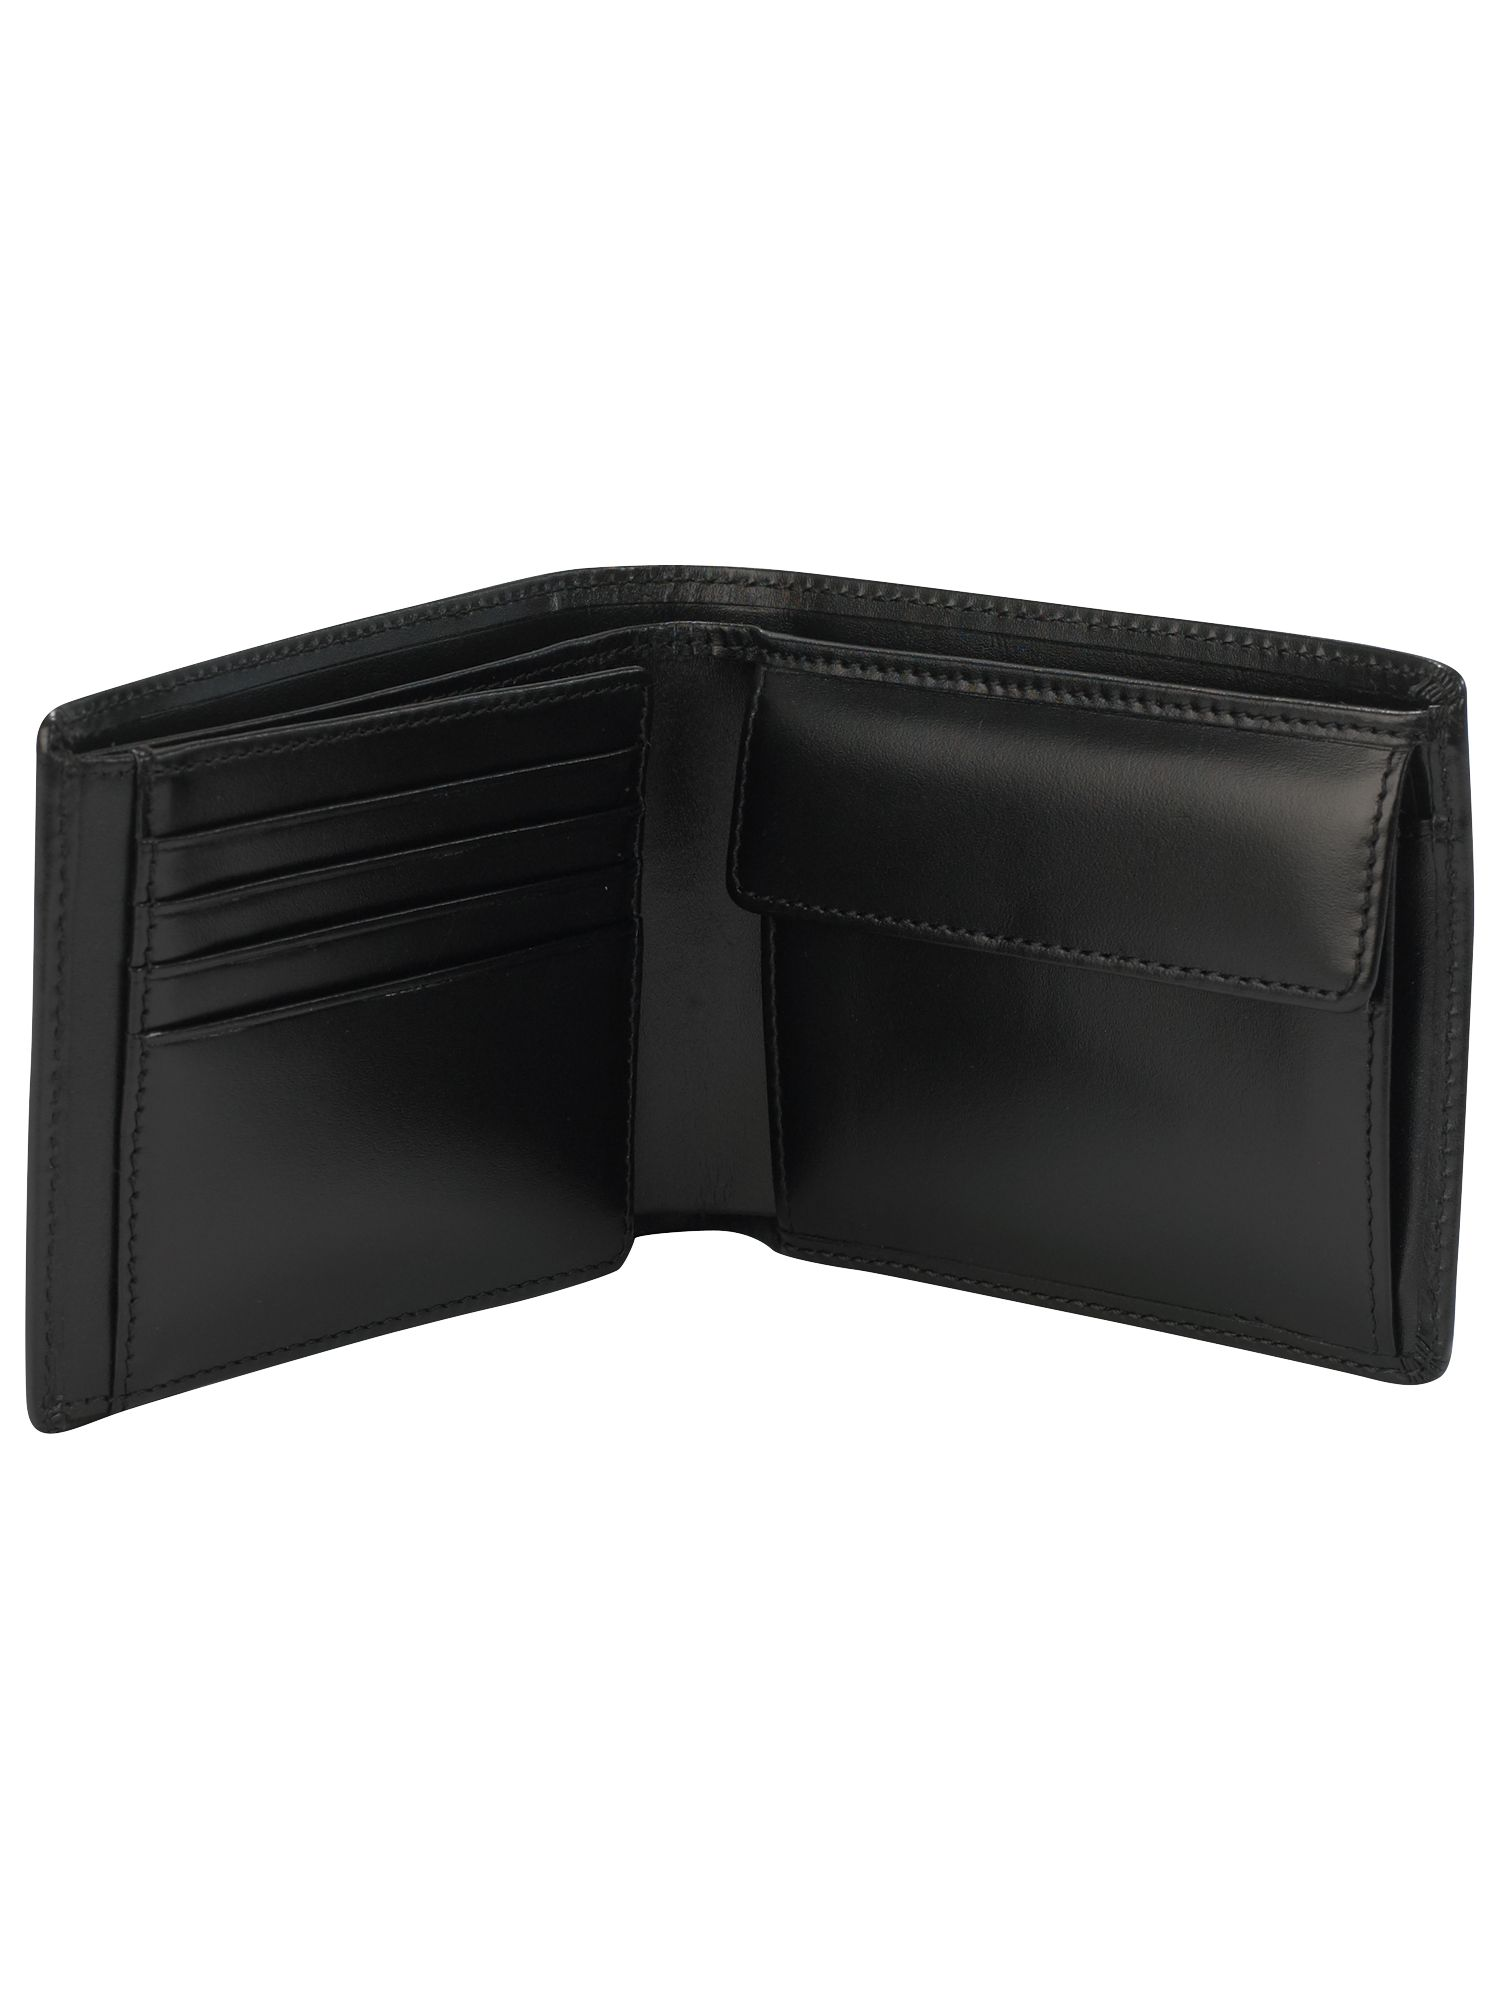 Leather trifold wallet with coin pocket